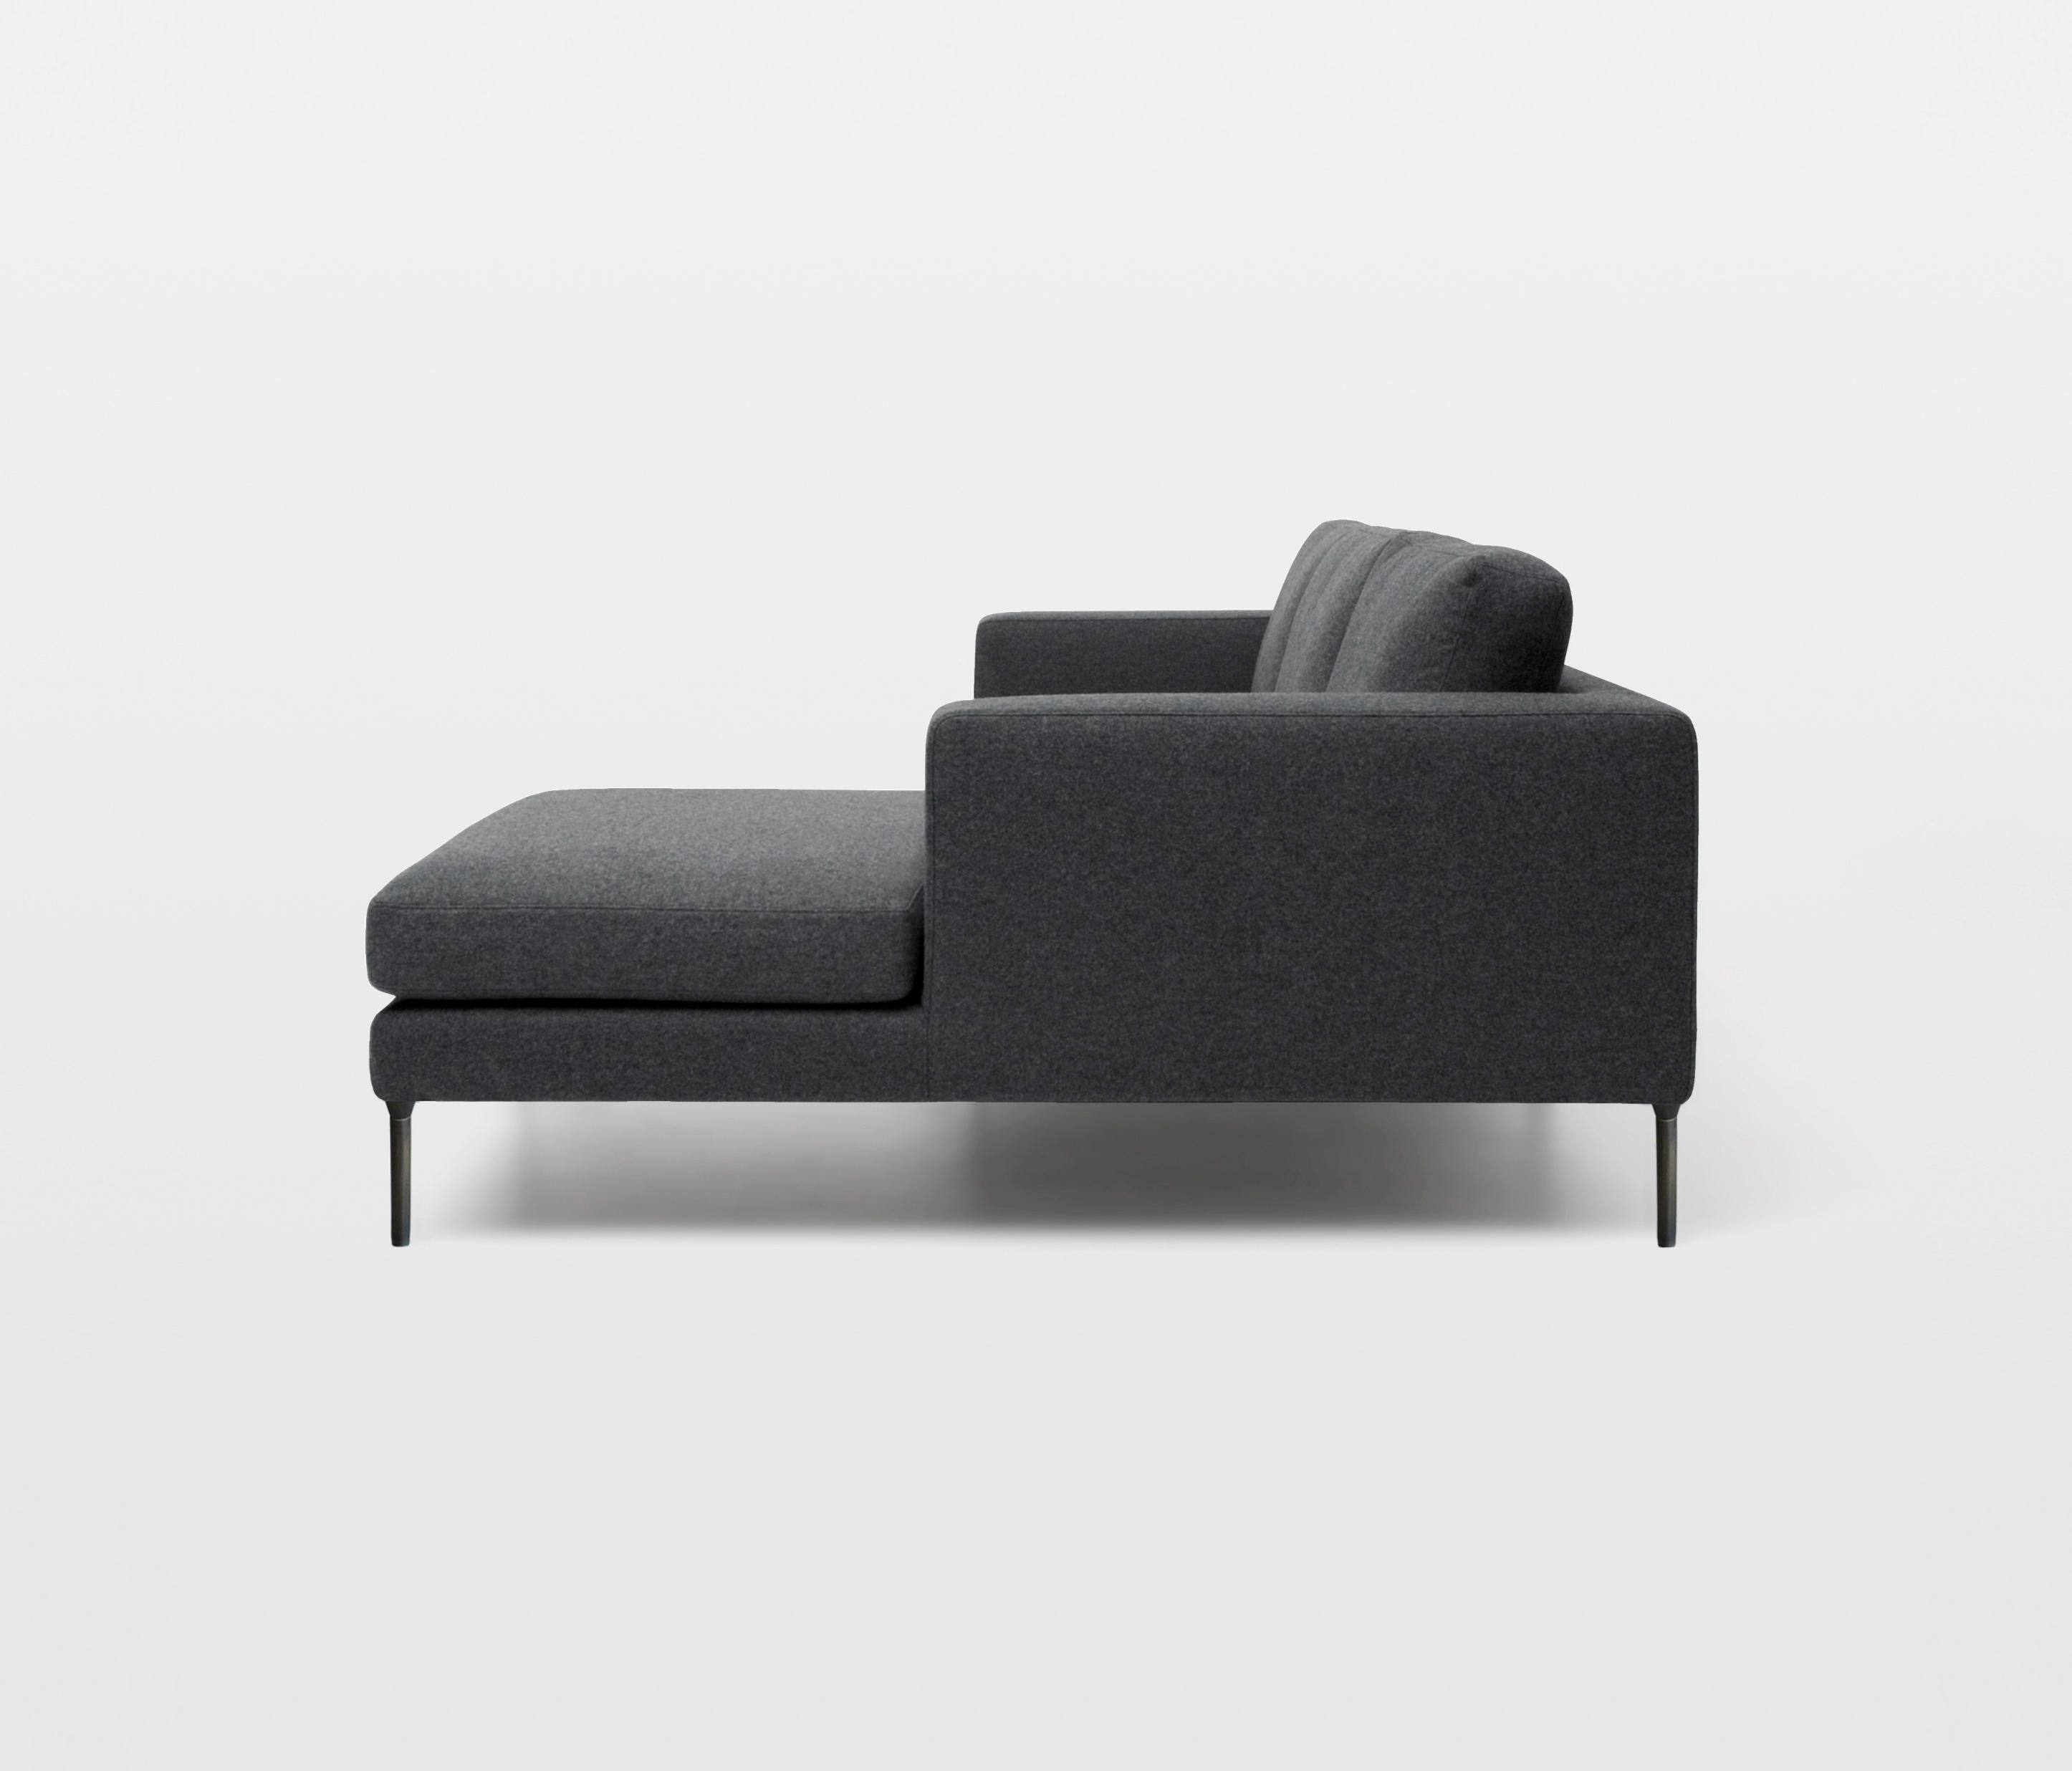 Rolf Benz Sofa Pfister Neo Sectional Sofas From Bensen Architonic